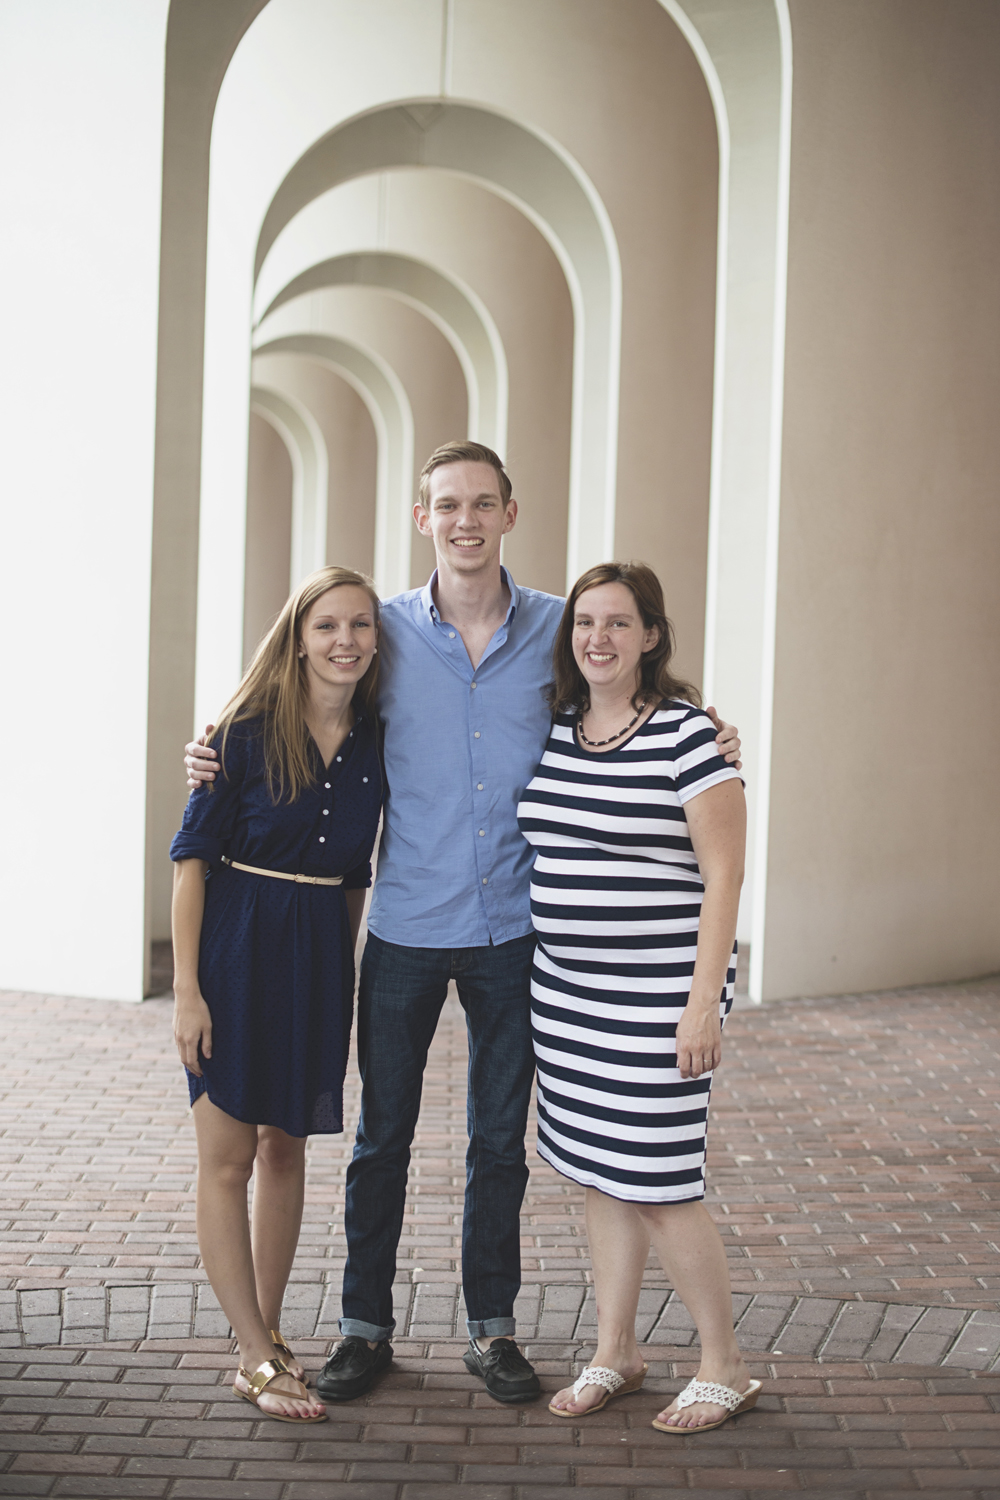 Christopher Newport Family Photos | Newport News, Virginia | Blue, tan, and white family outfit ideas